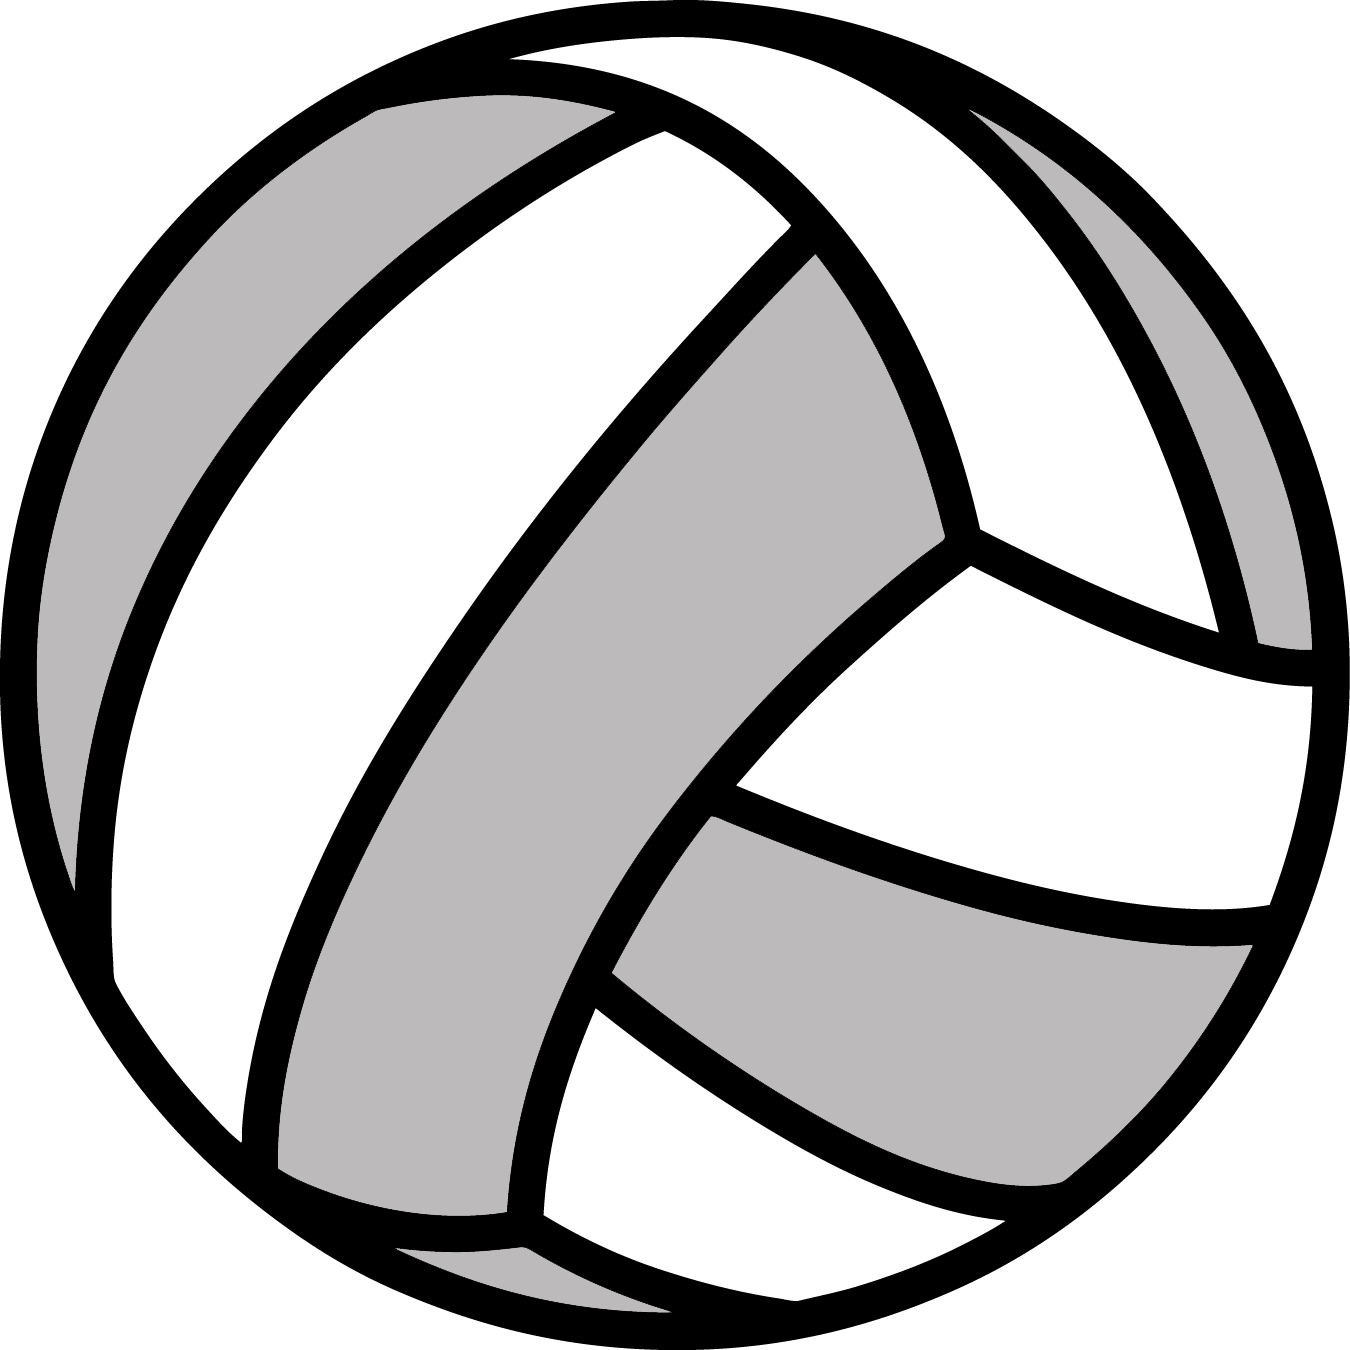 Volleyball Png Image Volleyball Clipart Volleyball Sports Clips